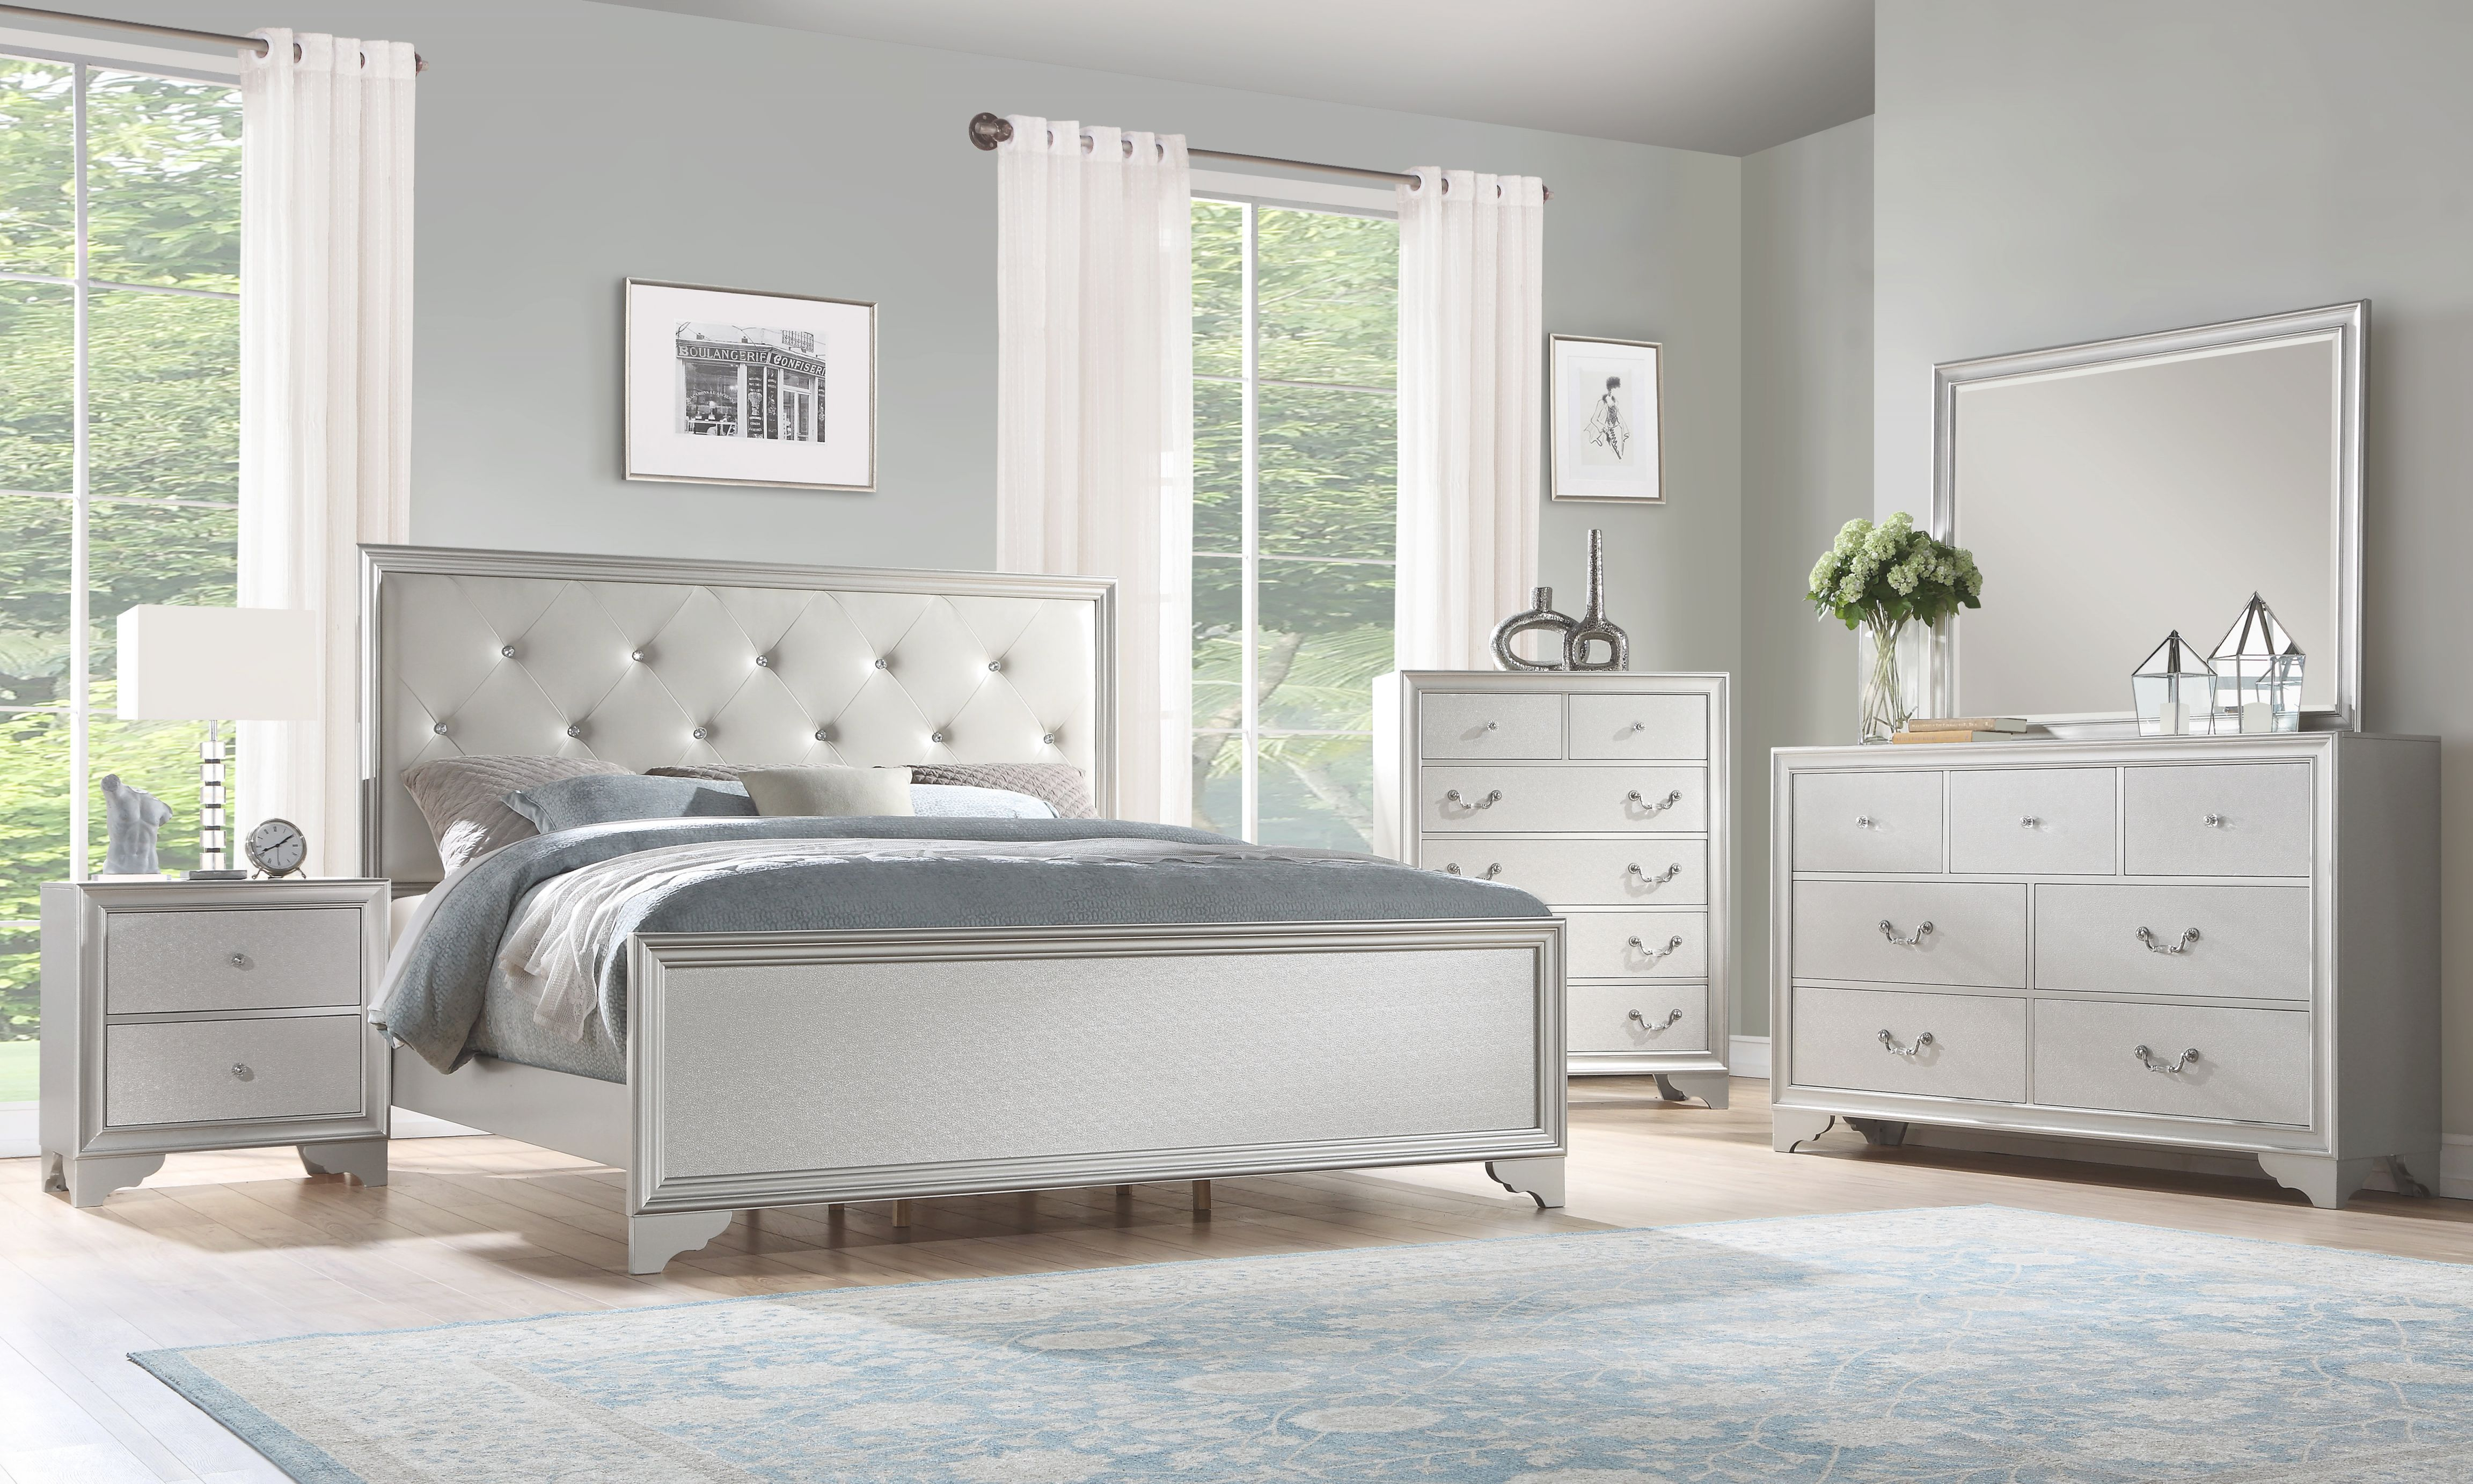 awesome bedroom set grey - awesome decors